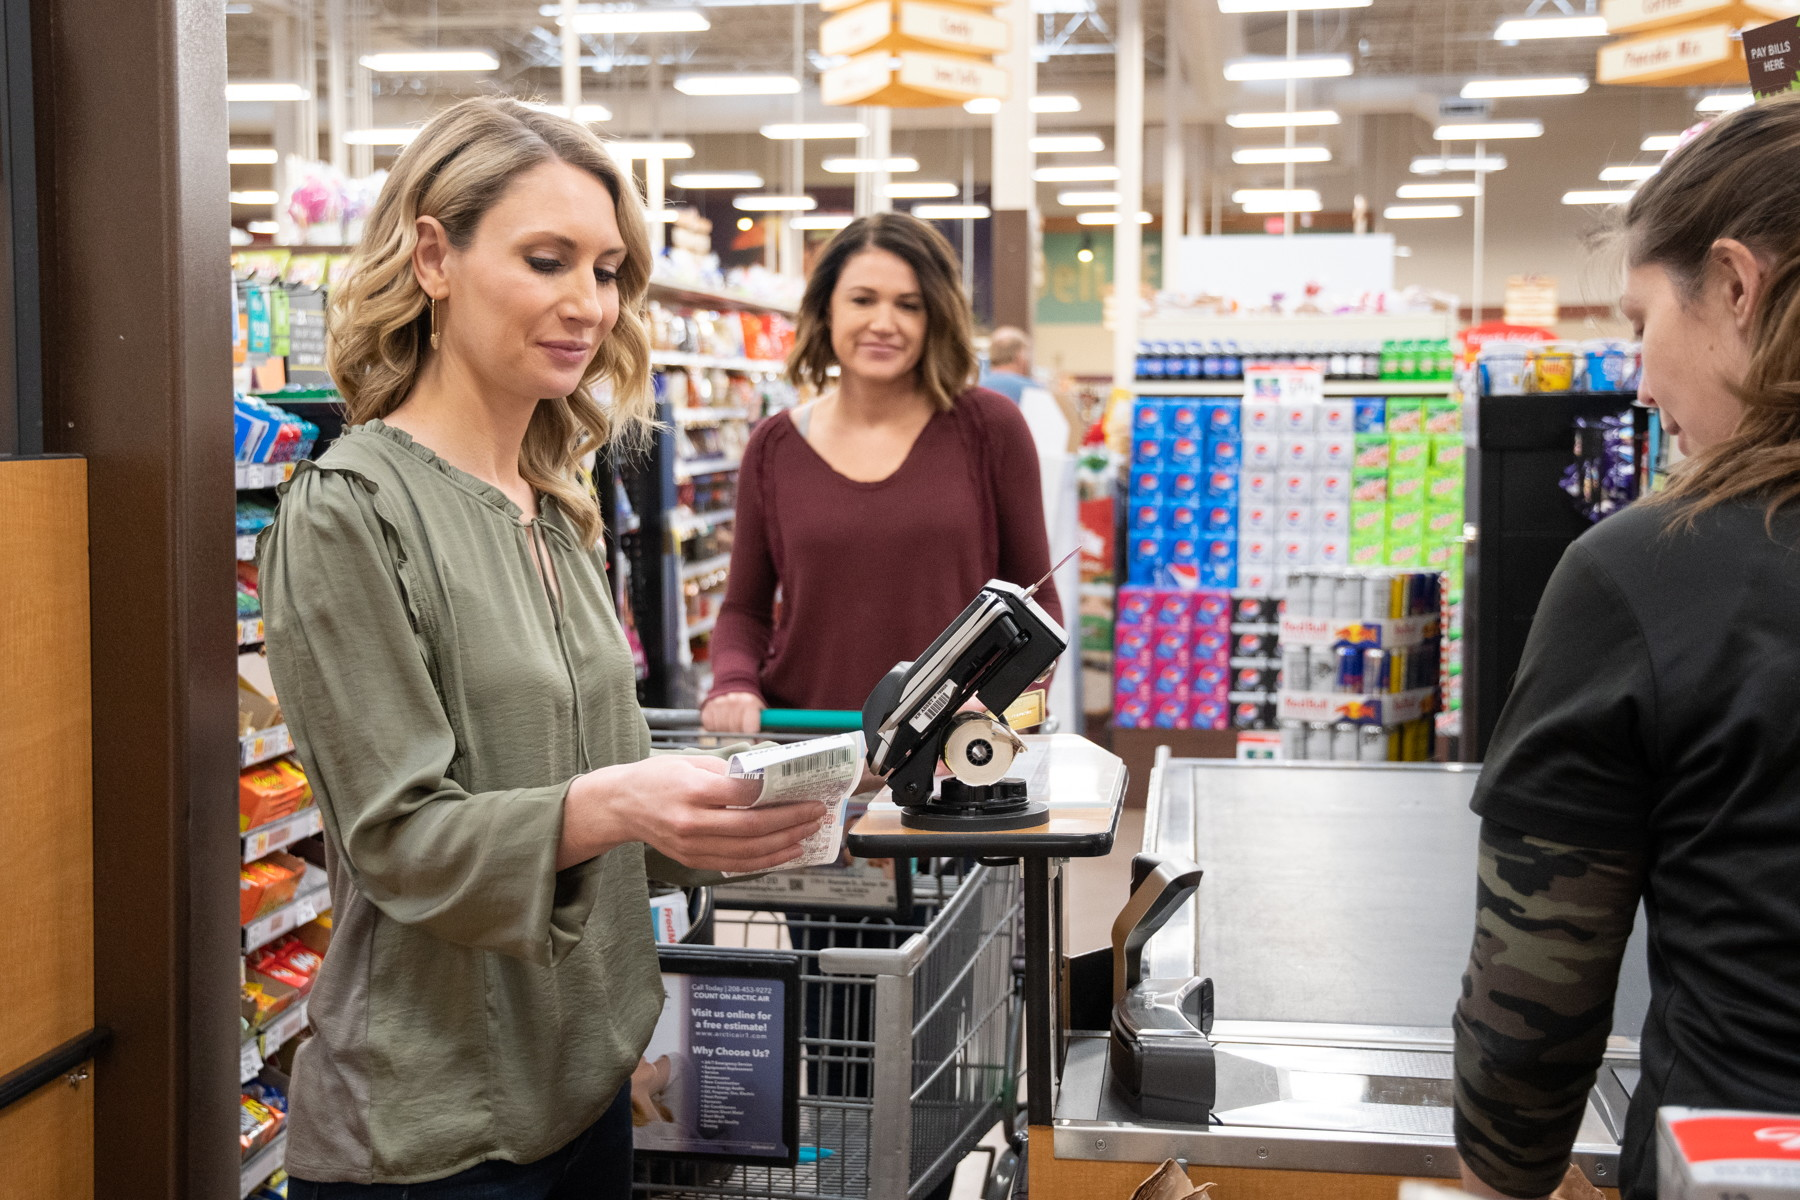 24 Ways to Coupon at Kroger So You Can Save BIG - The Krazy